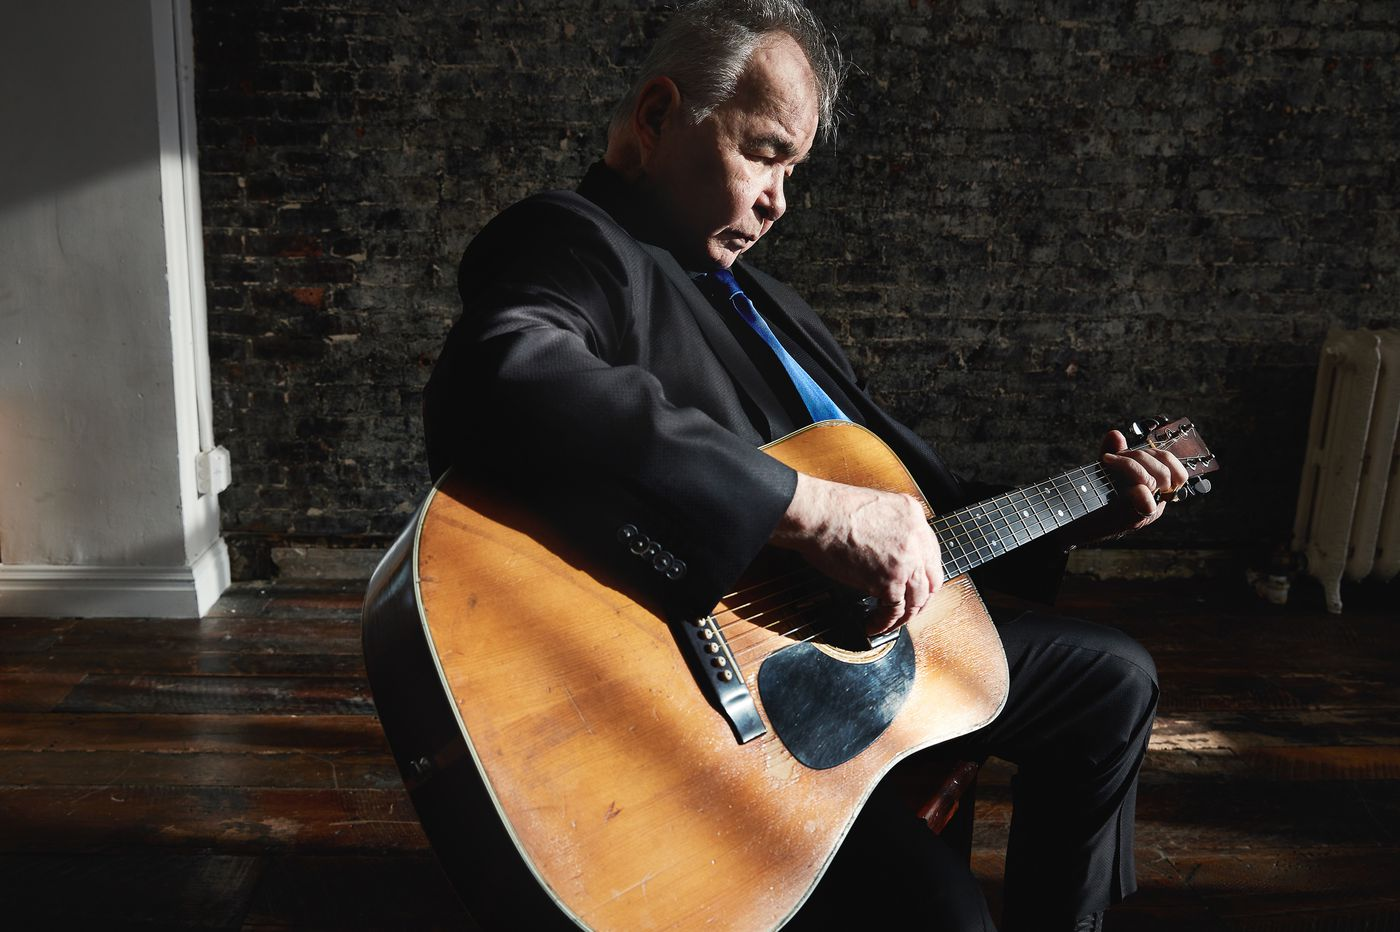 Coronavirus is hitting the music world hard as John Prine and others are diagnosed